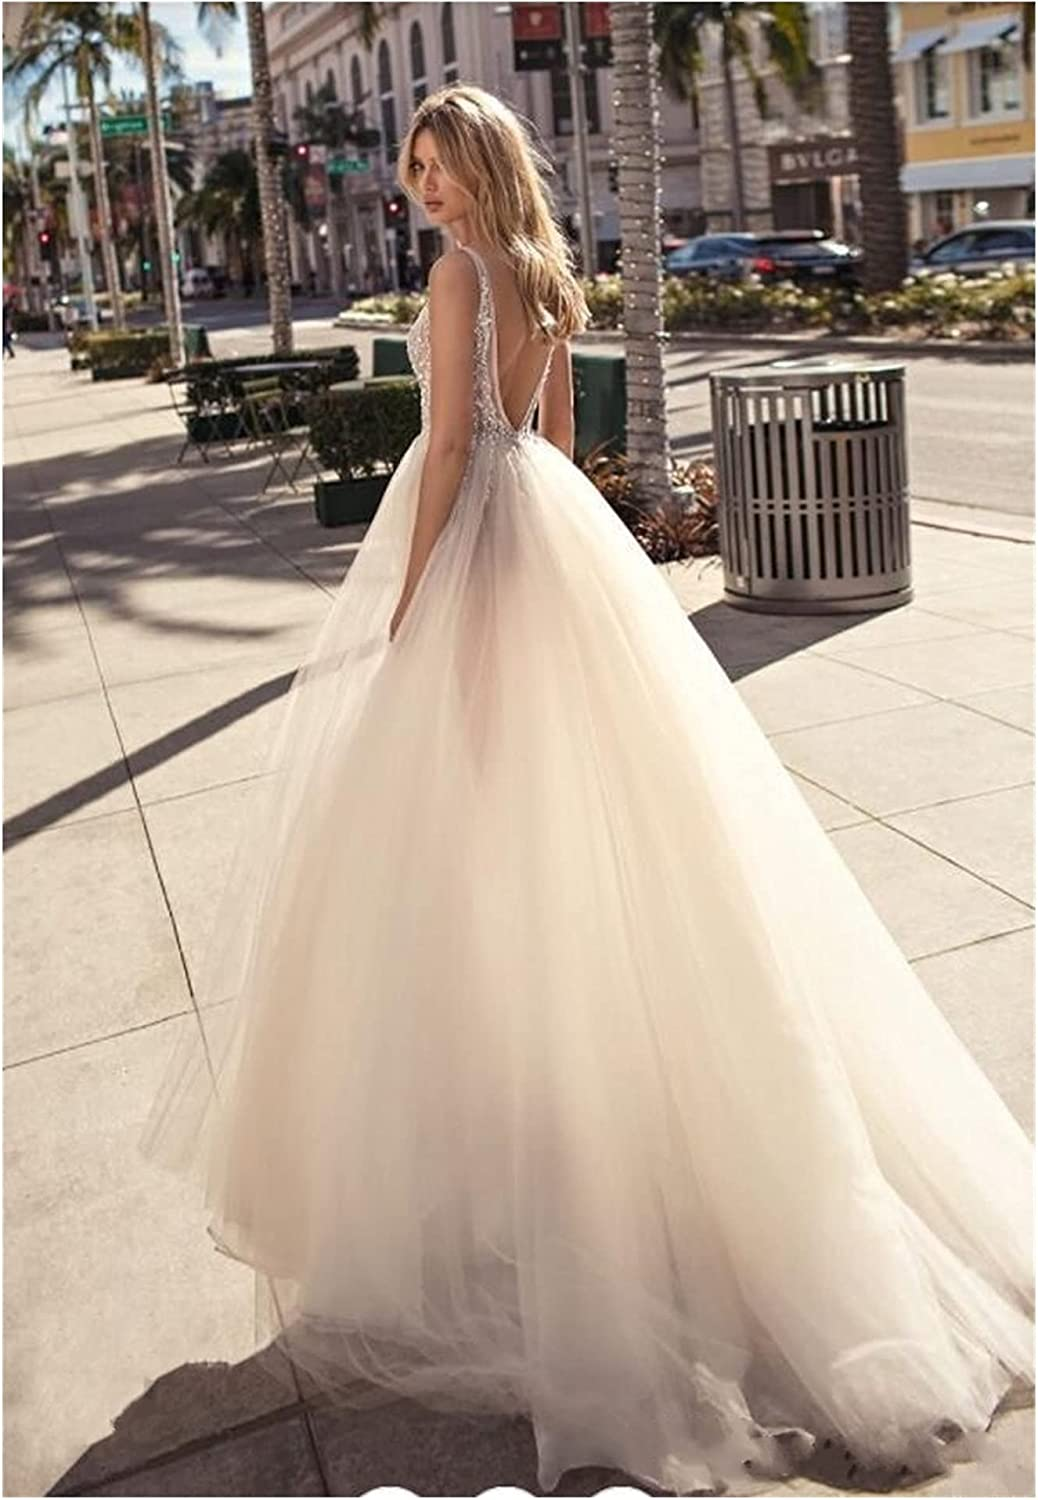 TDIDOJQ Charming Tulle Evening Gown Backless V-Neck High Split Prom Party Gowns Custom Made Special Occasion Dresses (Color : A, US Size : 14W)